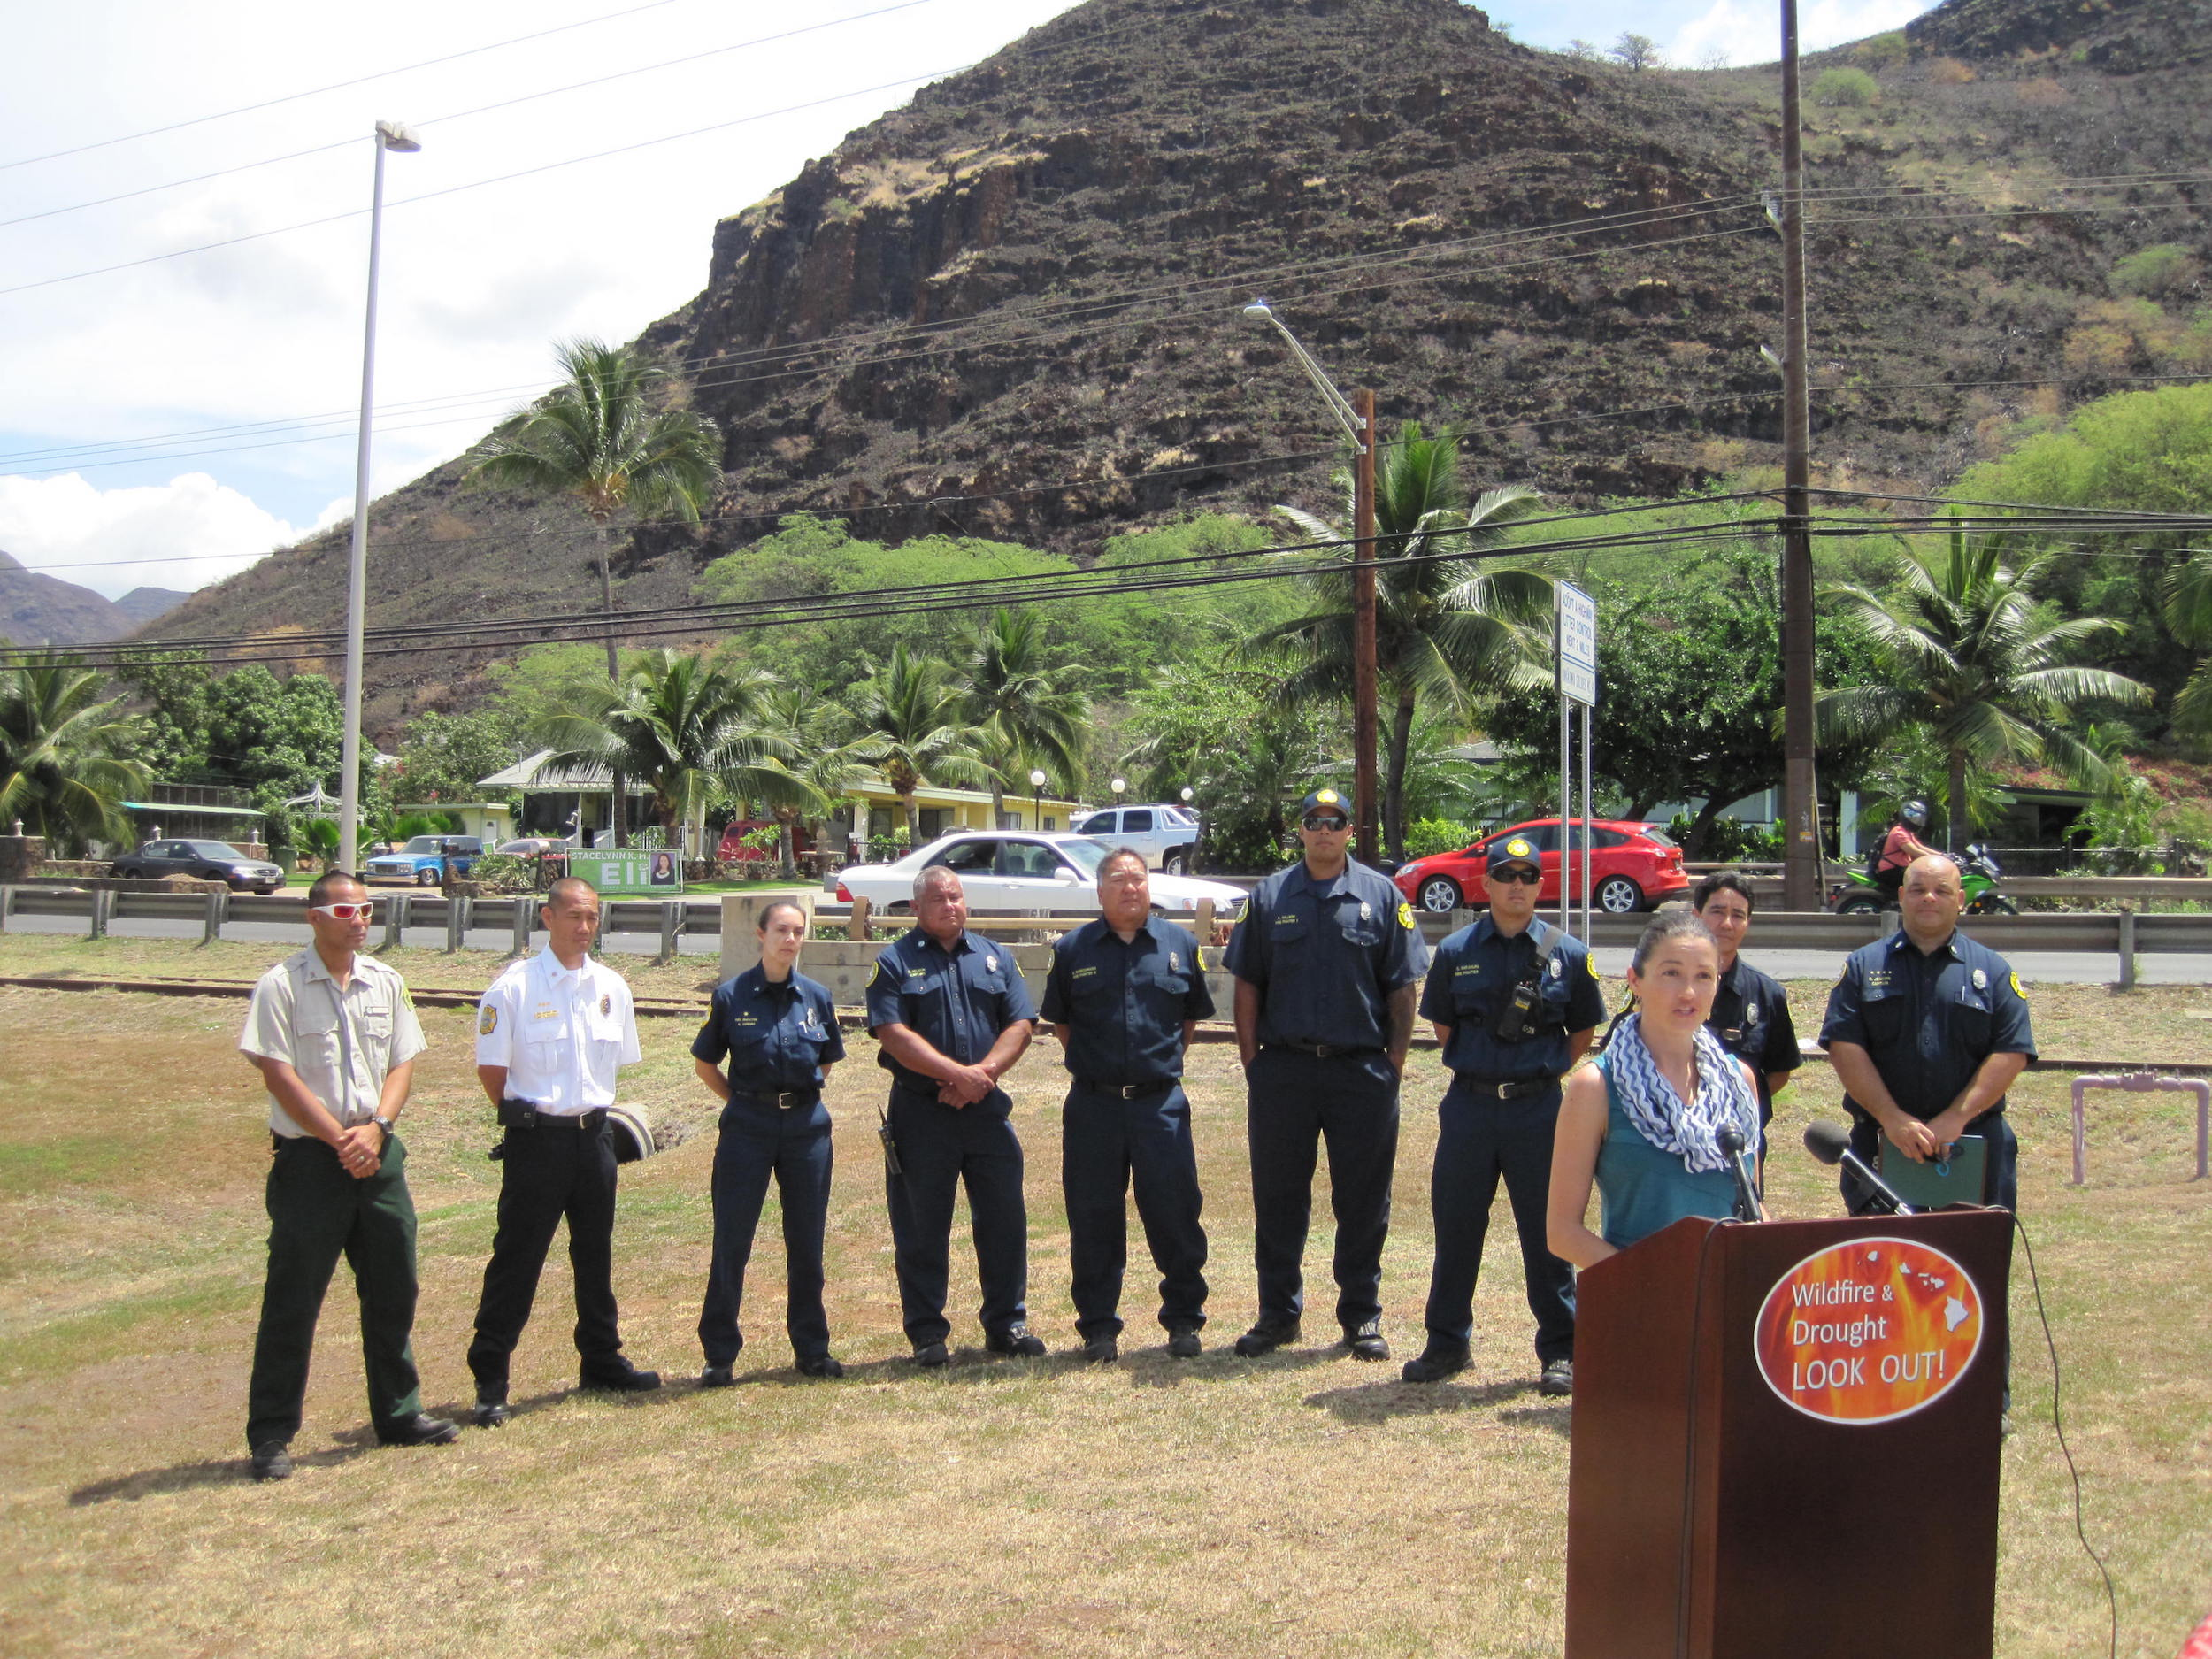 Elizabeth Pickett (HWMO) speaks to media with Oahu firefighters standing behind her. In the background: the charred landscape of Nanakuli from the recent fire.